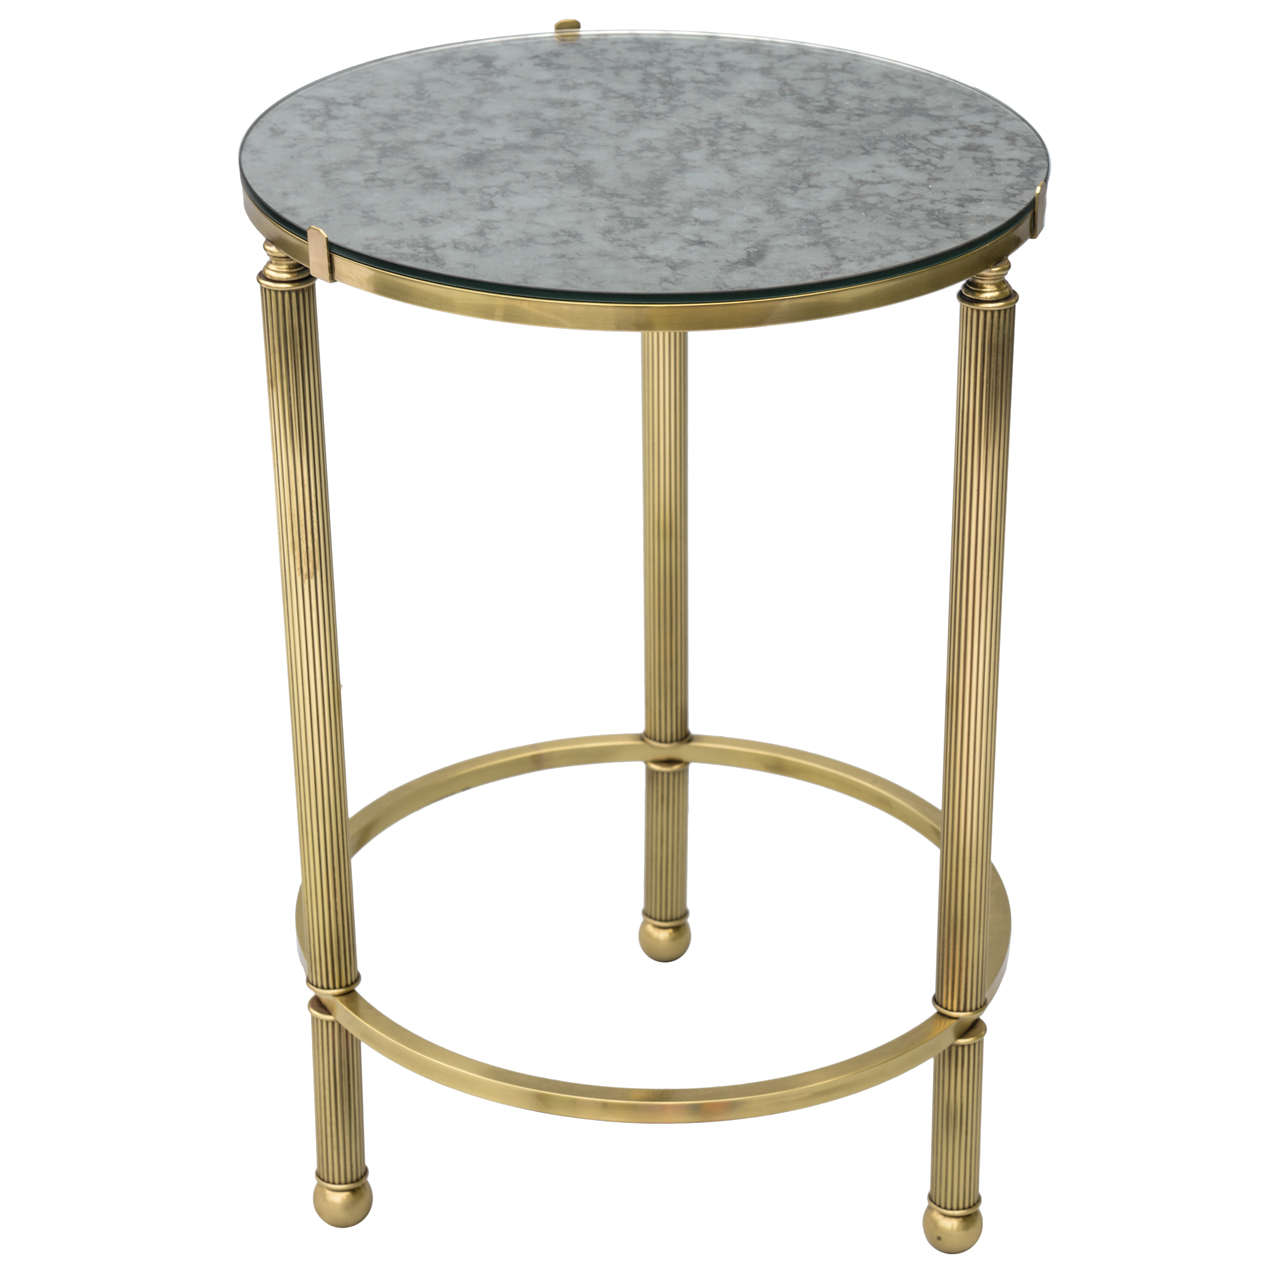 xjpg bronze accent table mirrored round swag lamp ethan allen outdoor furniture astoria patio black wicker chairs white corner hampton bay cushions door saddle half moon console